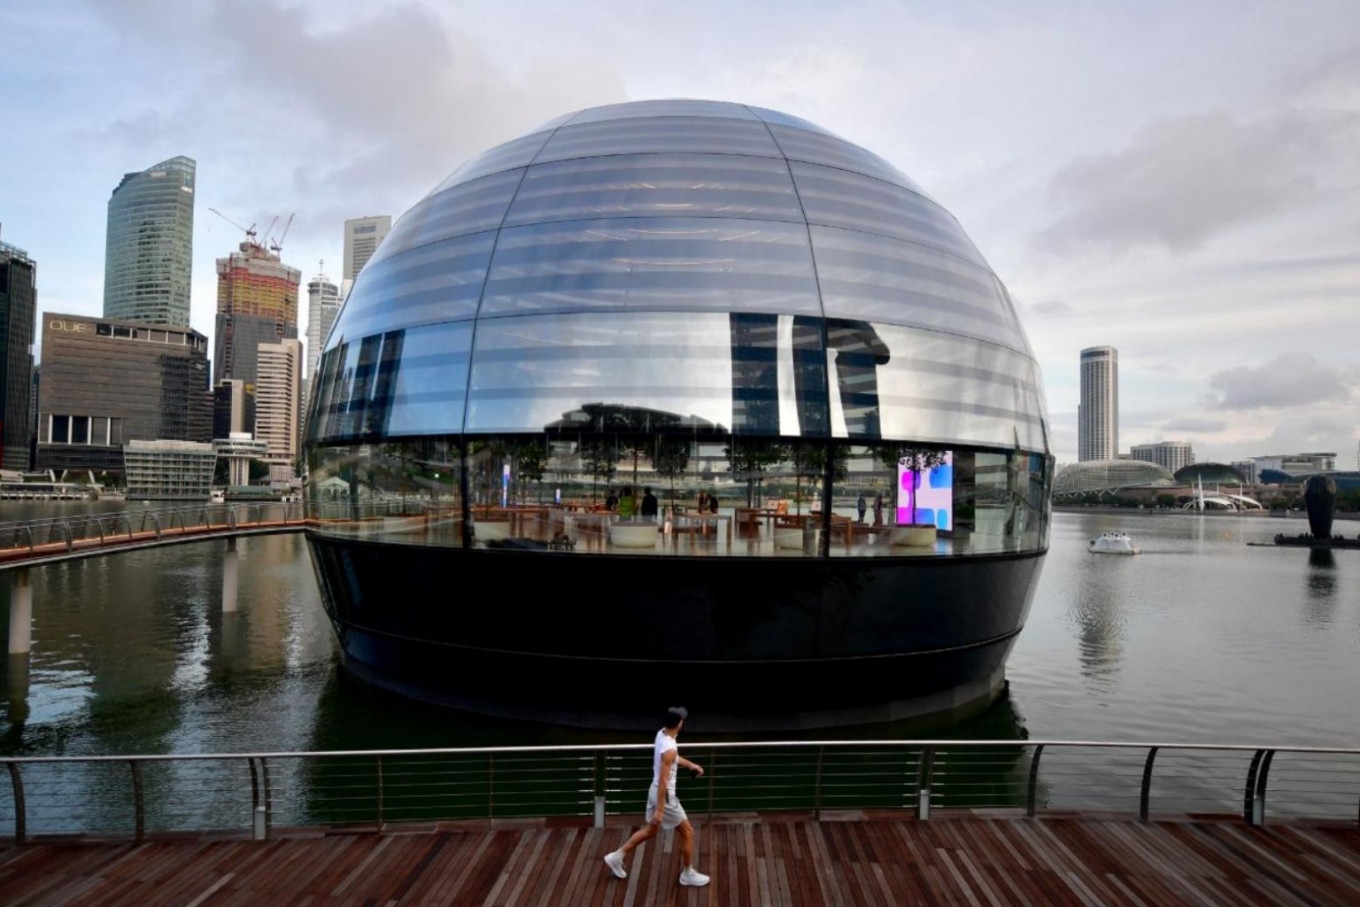 Apple's nearly 40-year journey in Singapore celebrates architecture and design